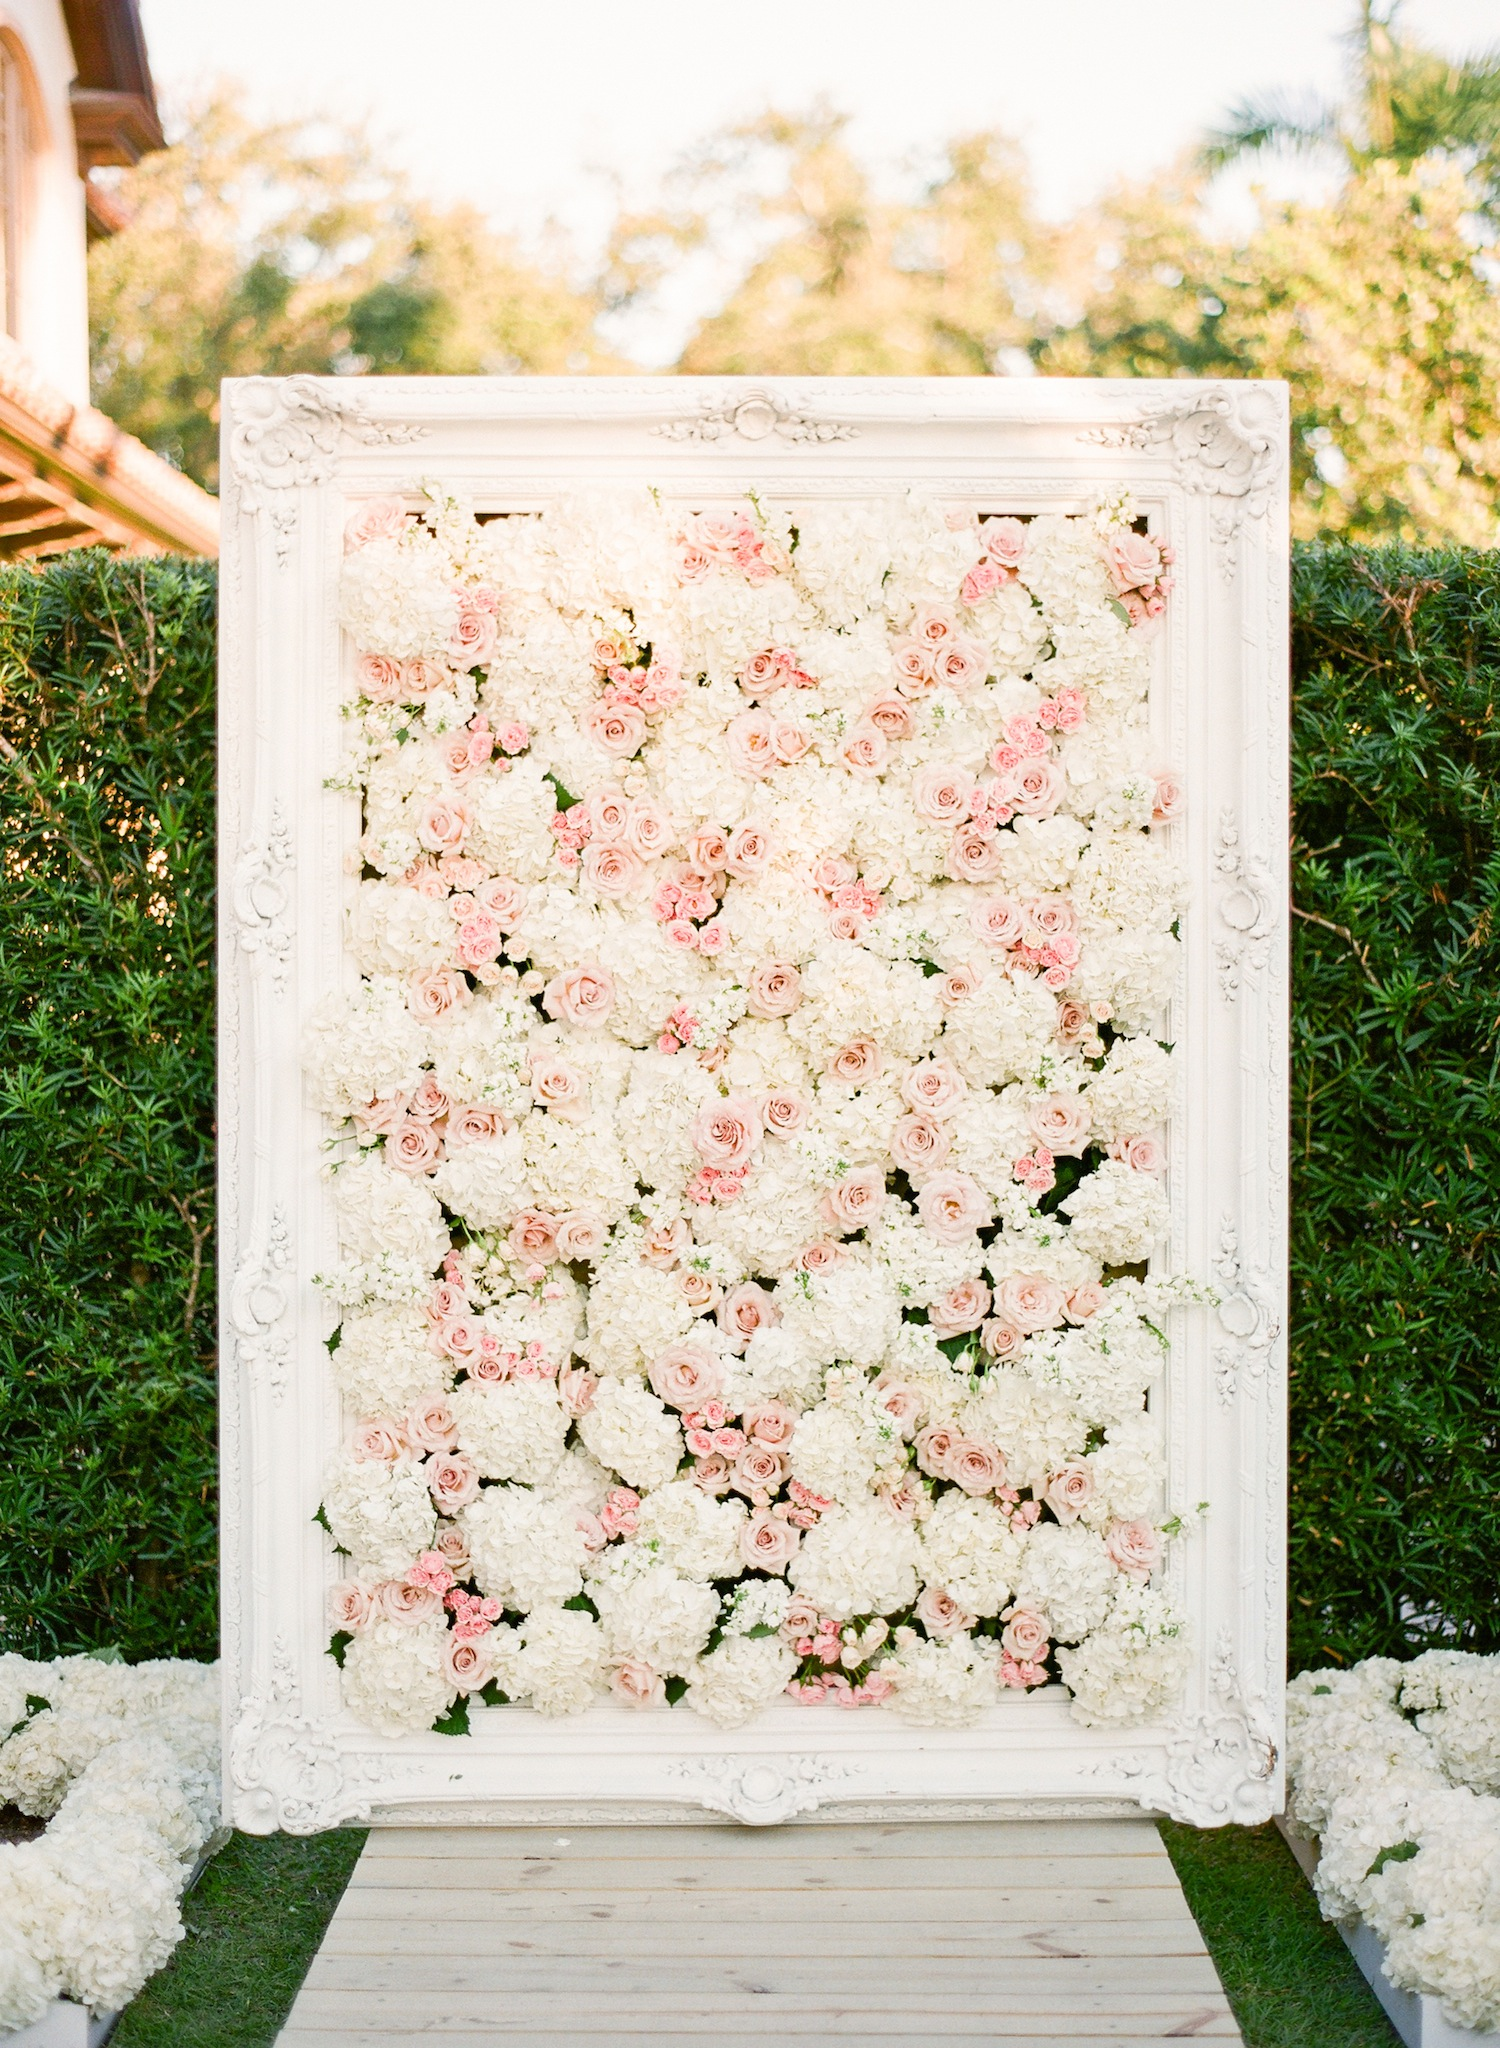 Flower wall in frame at ceremony backdrop outdoor wedding ideas